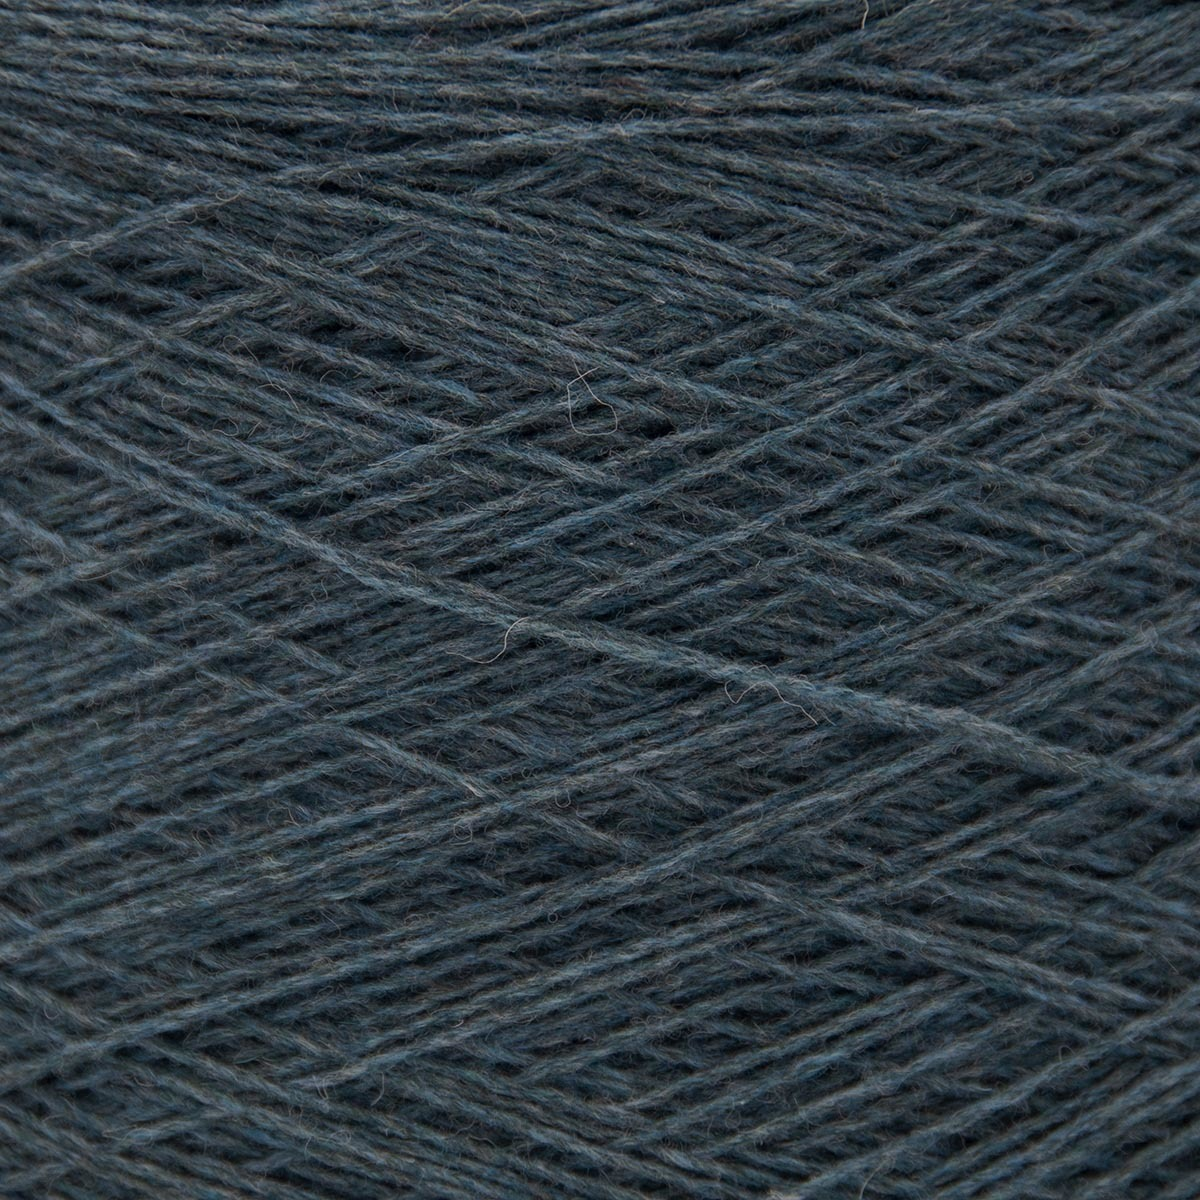 Knoll Yarns Lambswool - 127